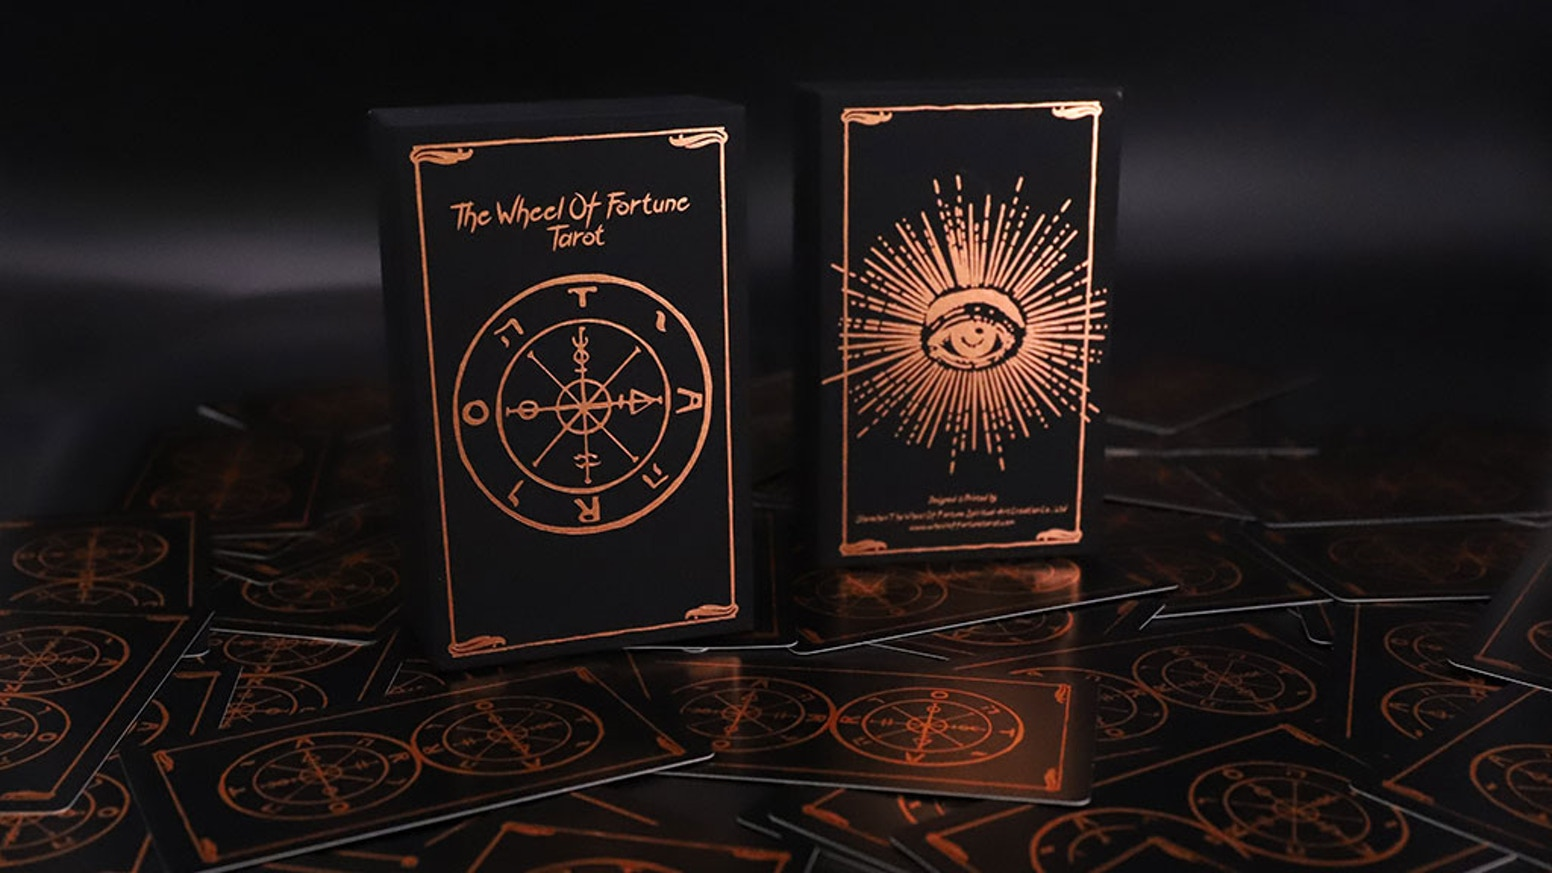 Wheel Of Fortune Tarot Card Deck by The Wheel Of Fortune